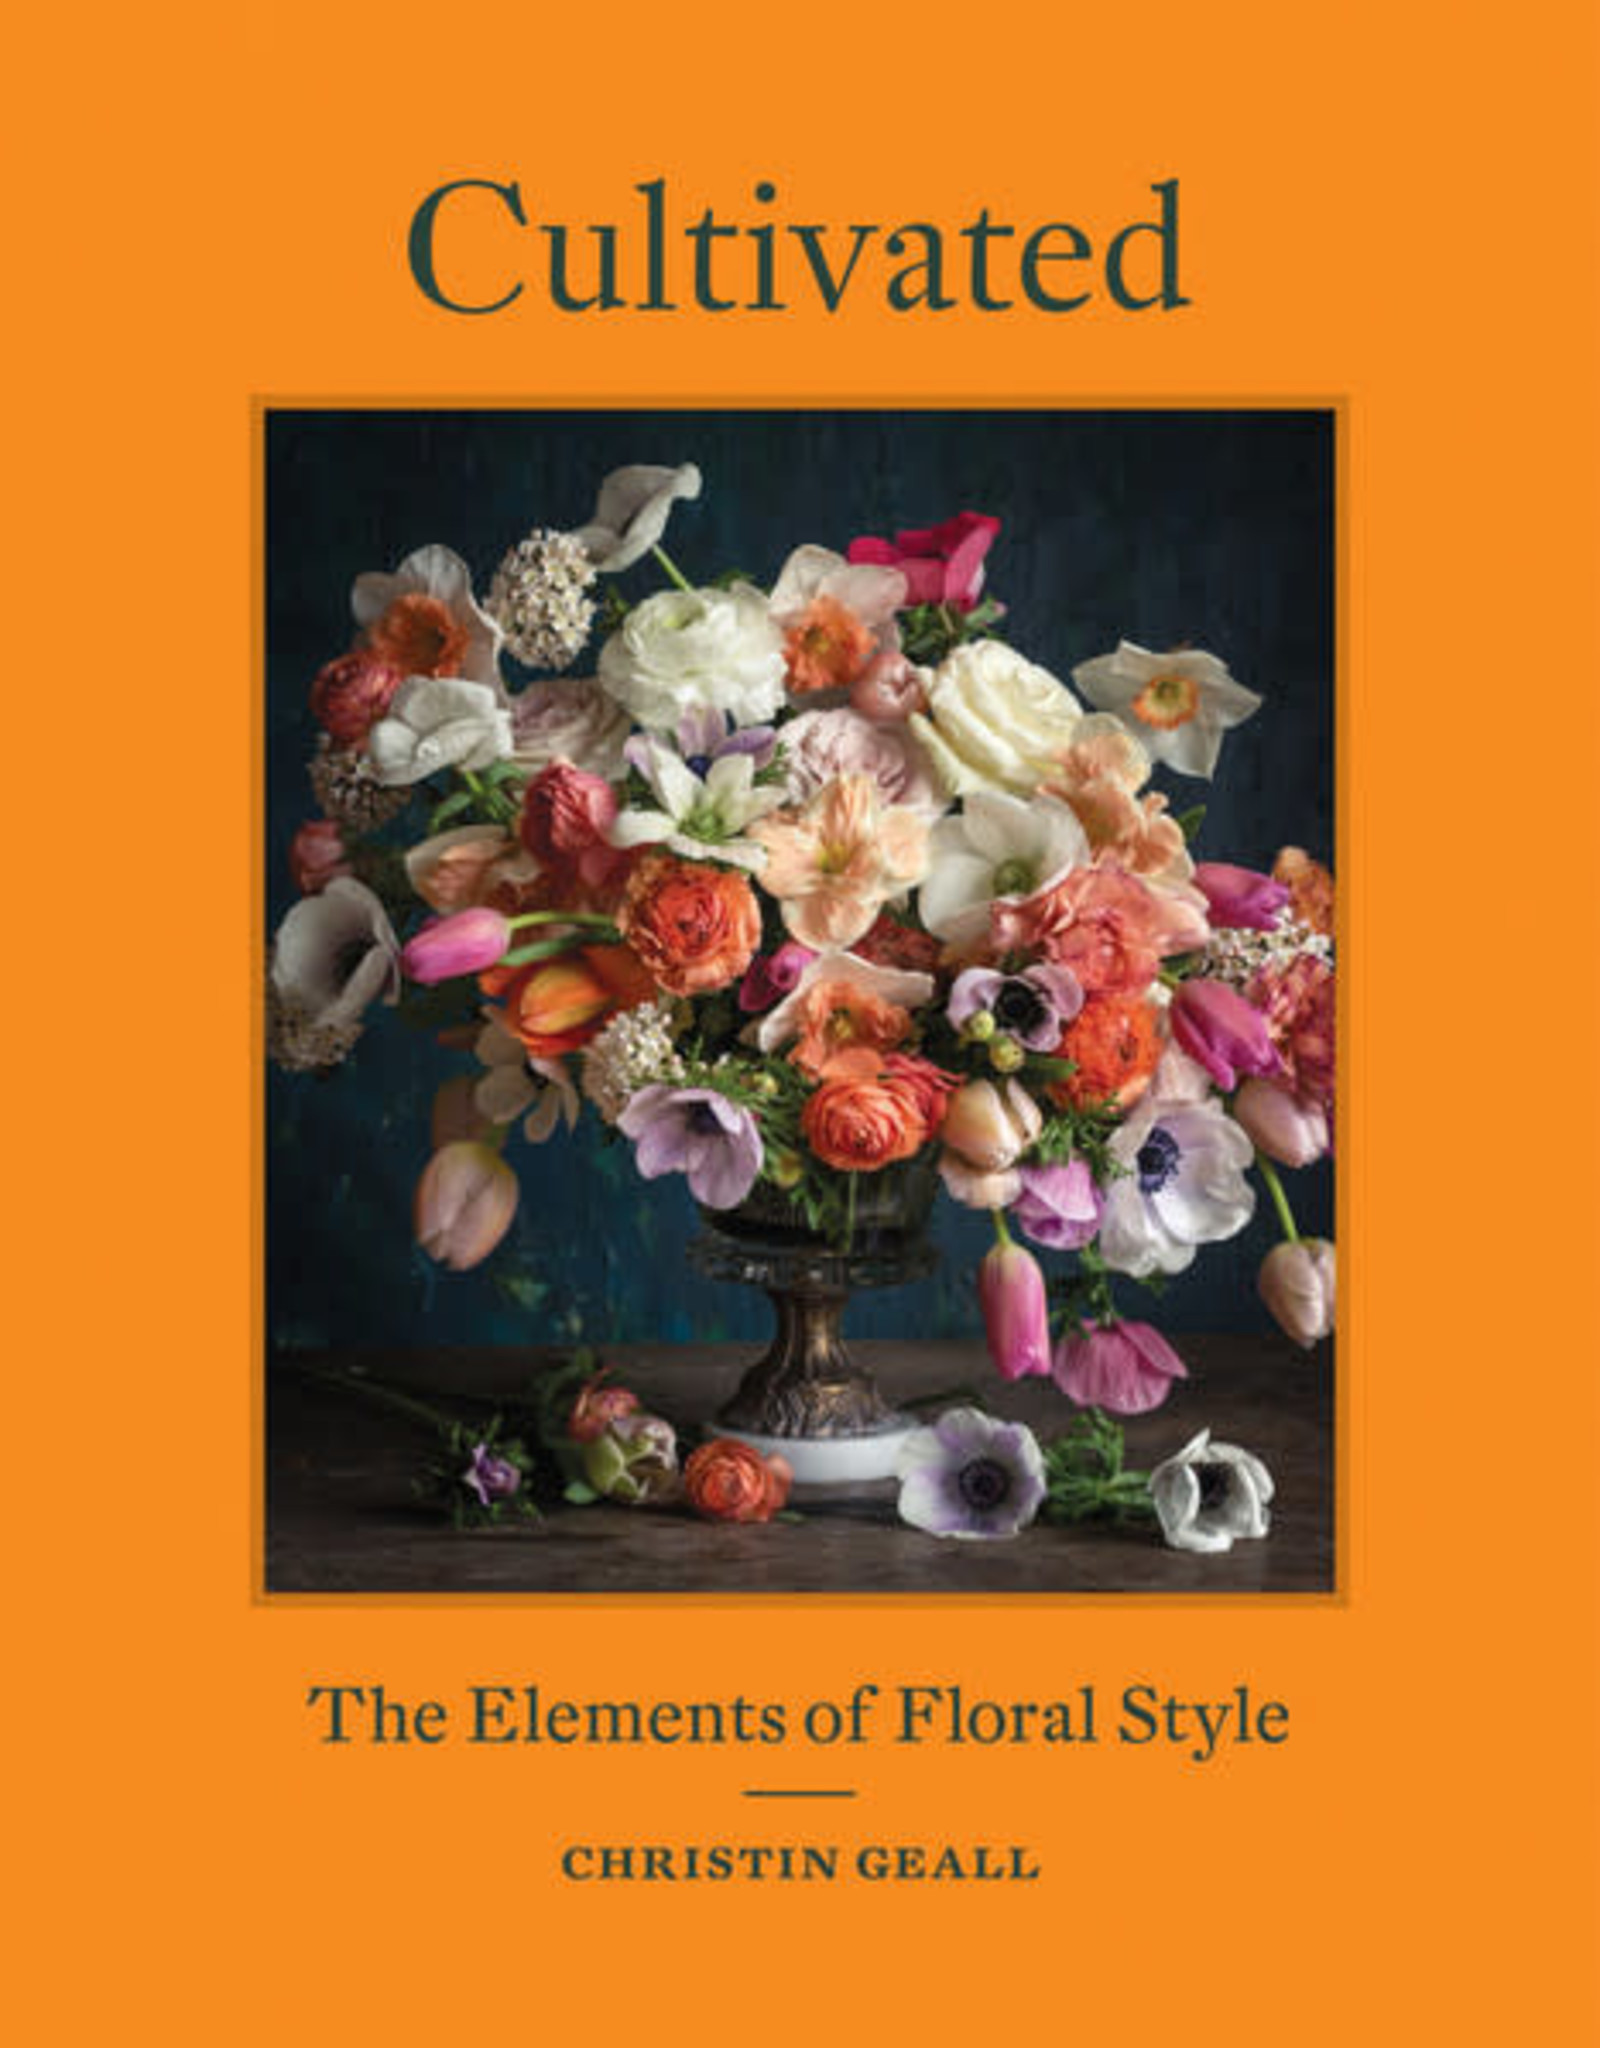 Cultivated Book, Christin Geall